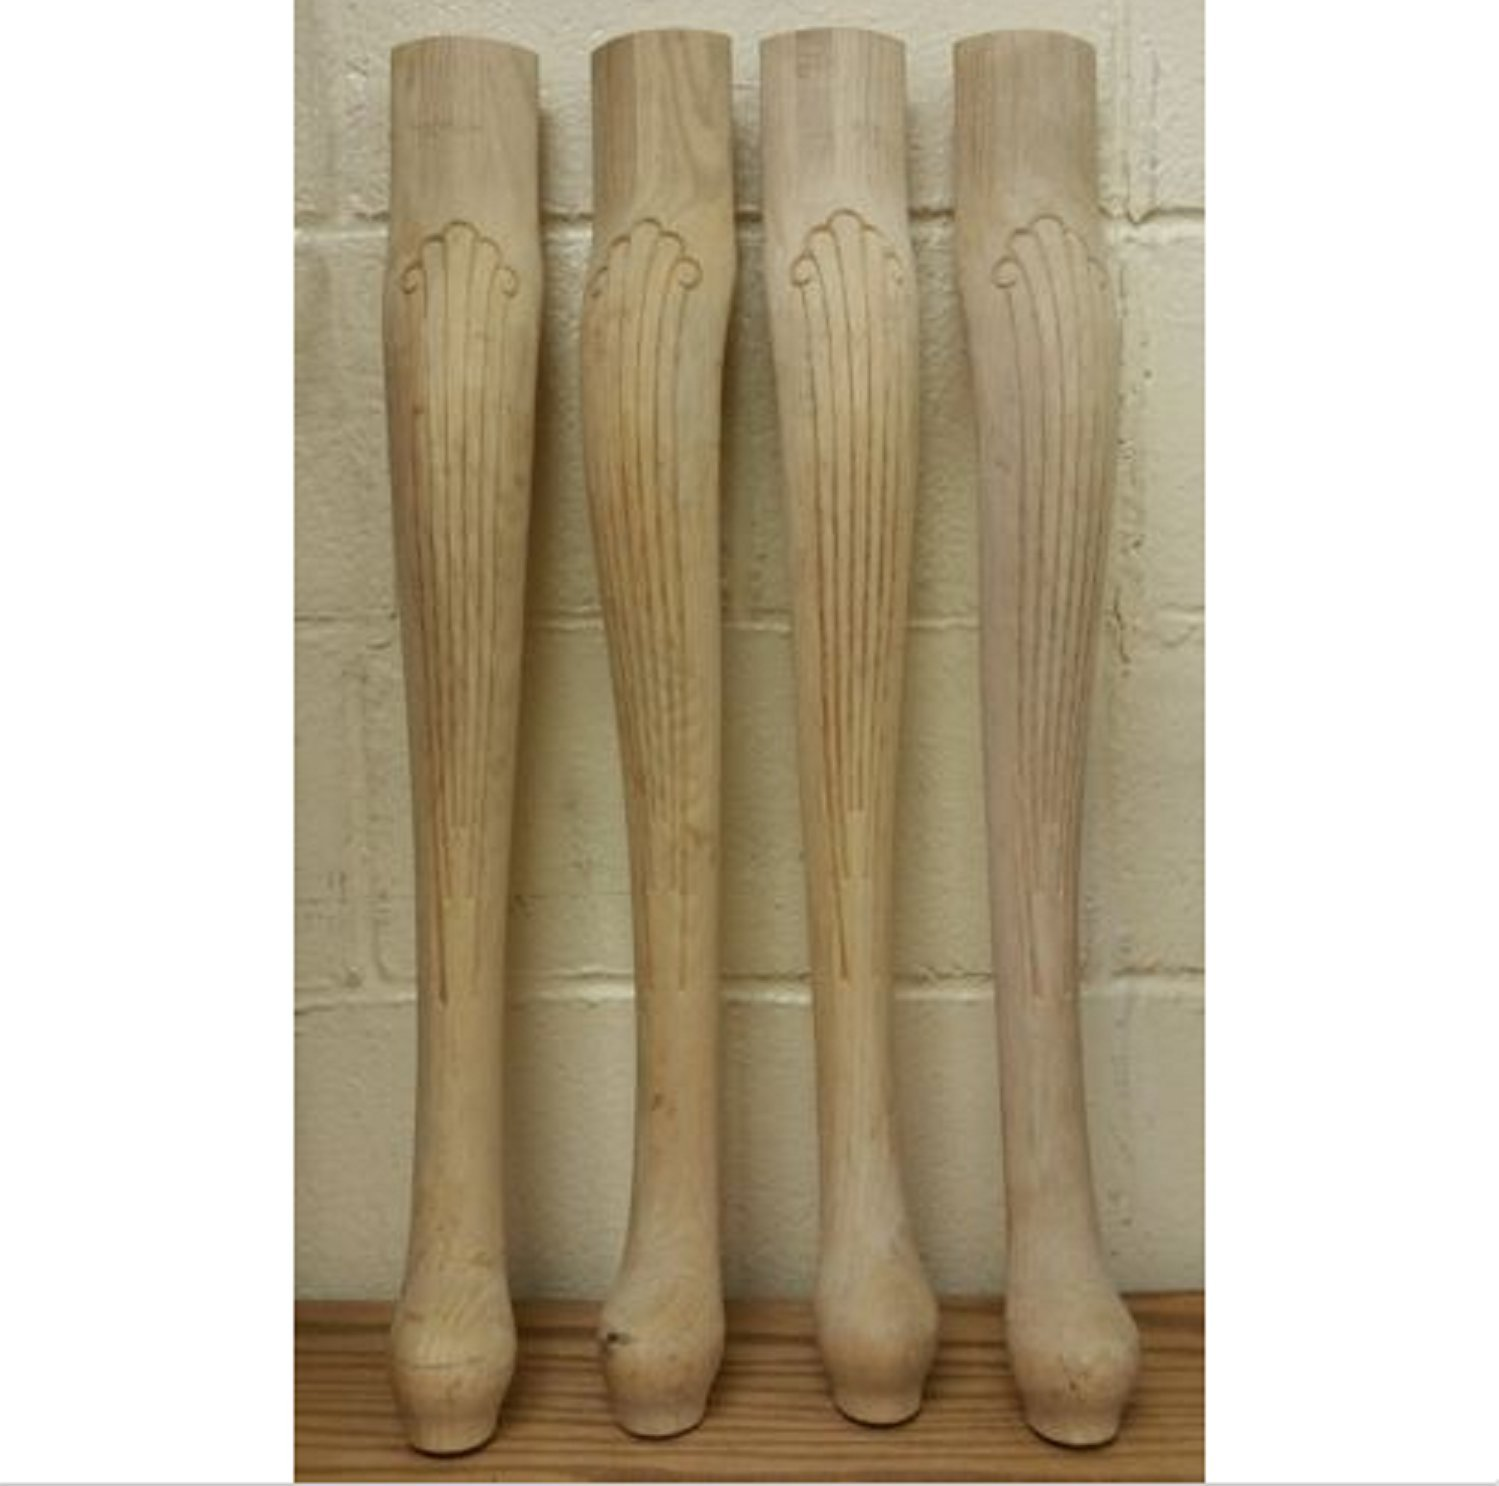 USA Premium Store Set of 4 Unfinished Oak Table Legs Queen Anne Style 26 1/4'' x 3 7/8''